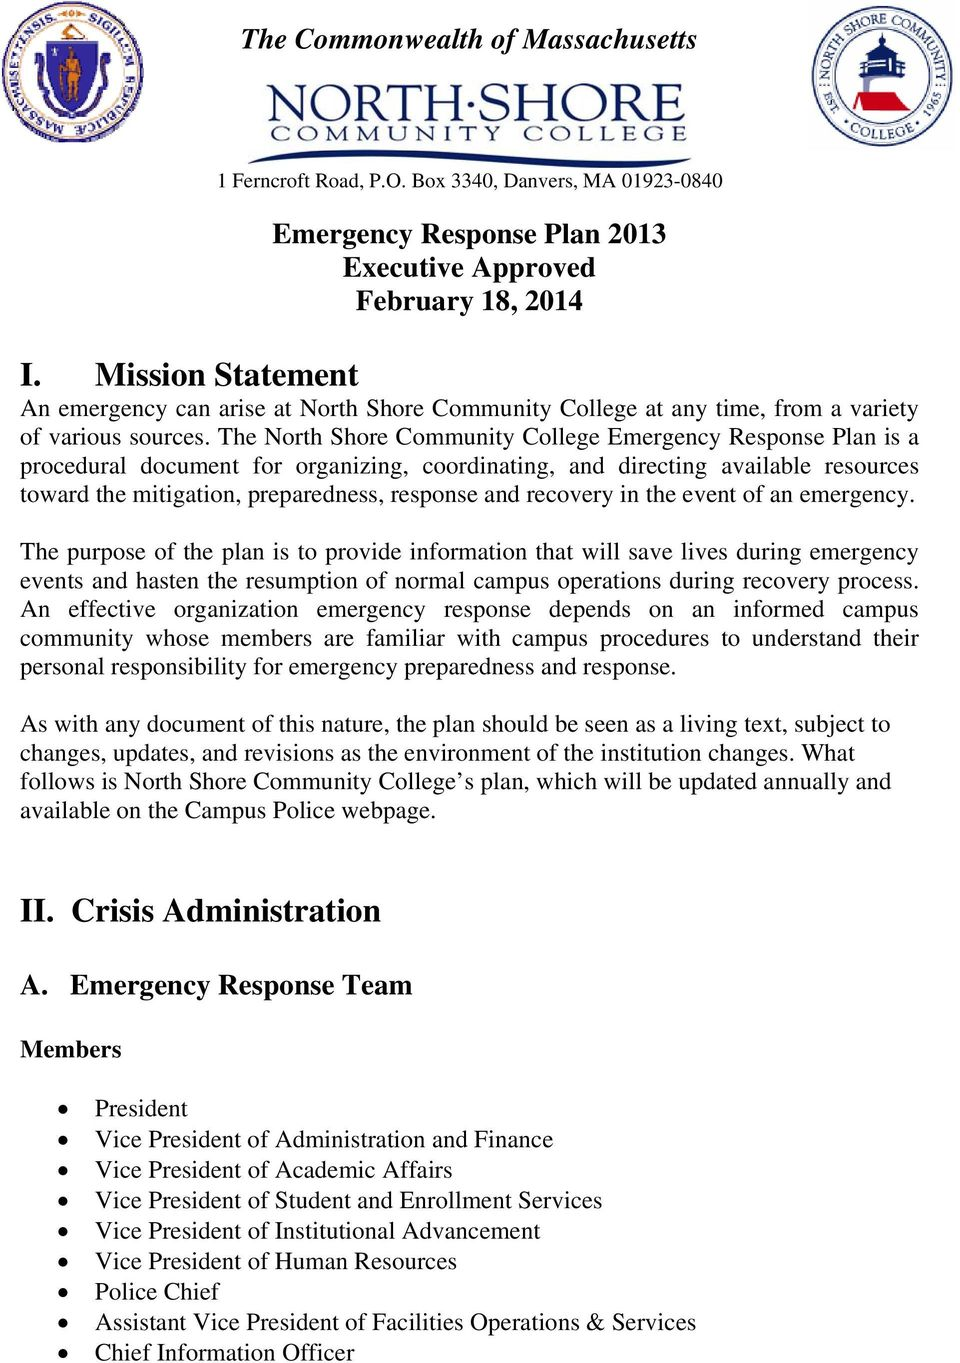 The North Shore Community College Emergency Response Plan is a procedural document for organizing, coordinating, and directing available resources toward the mitigation, preparedness, response and